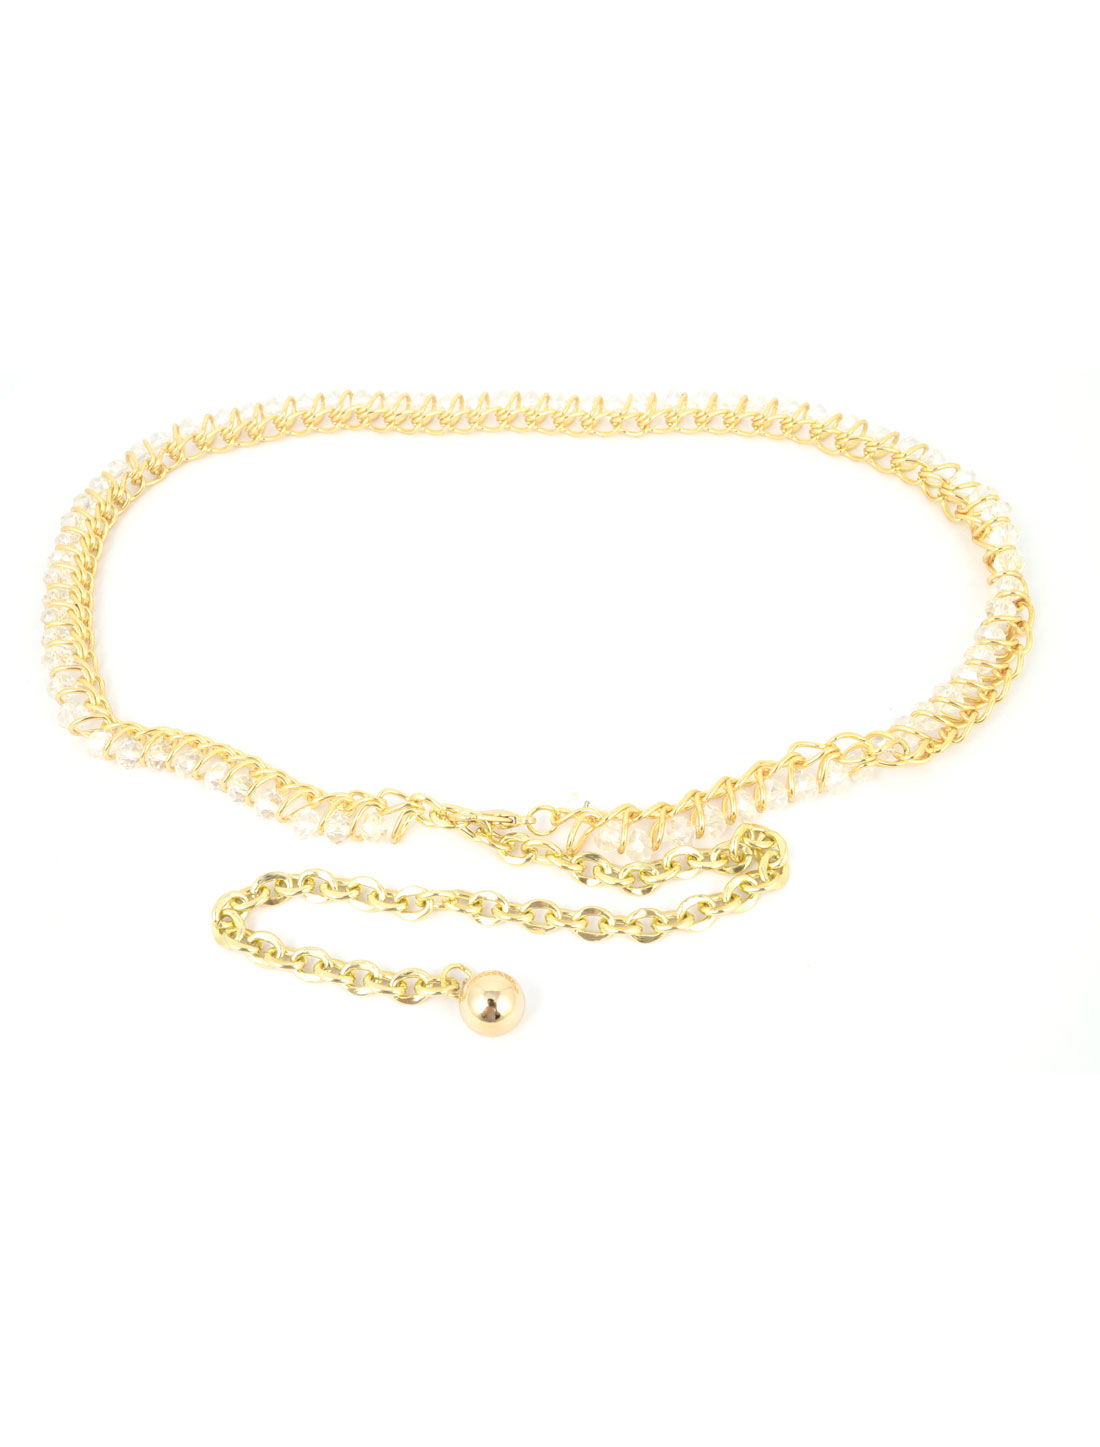 Ladies Clear Faceted Plastic Crystal Linked Adjustable Metal Waist Chain Belt